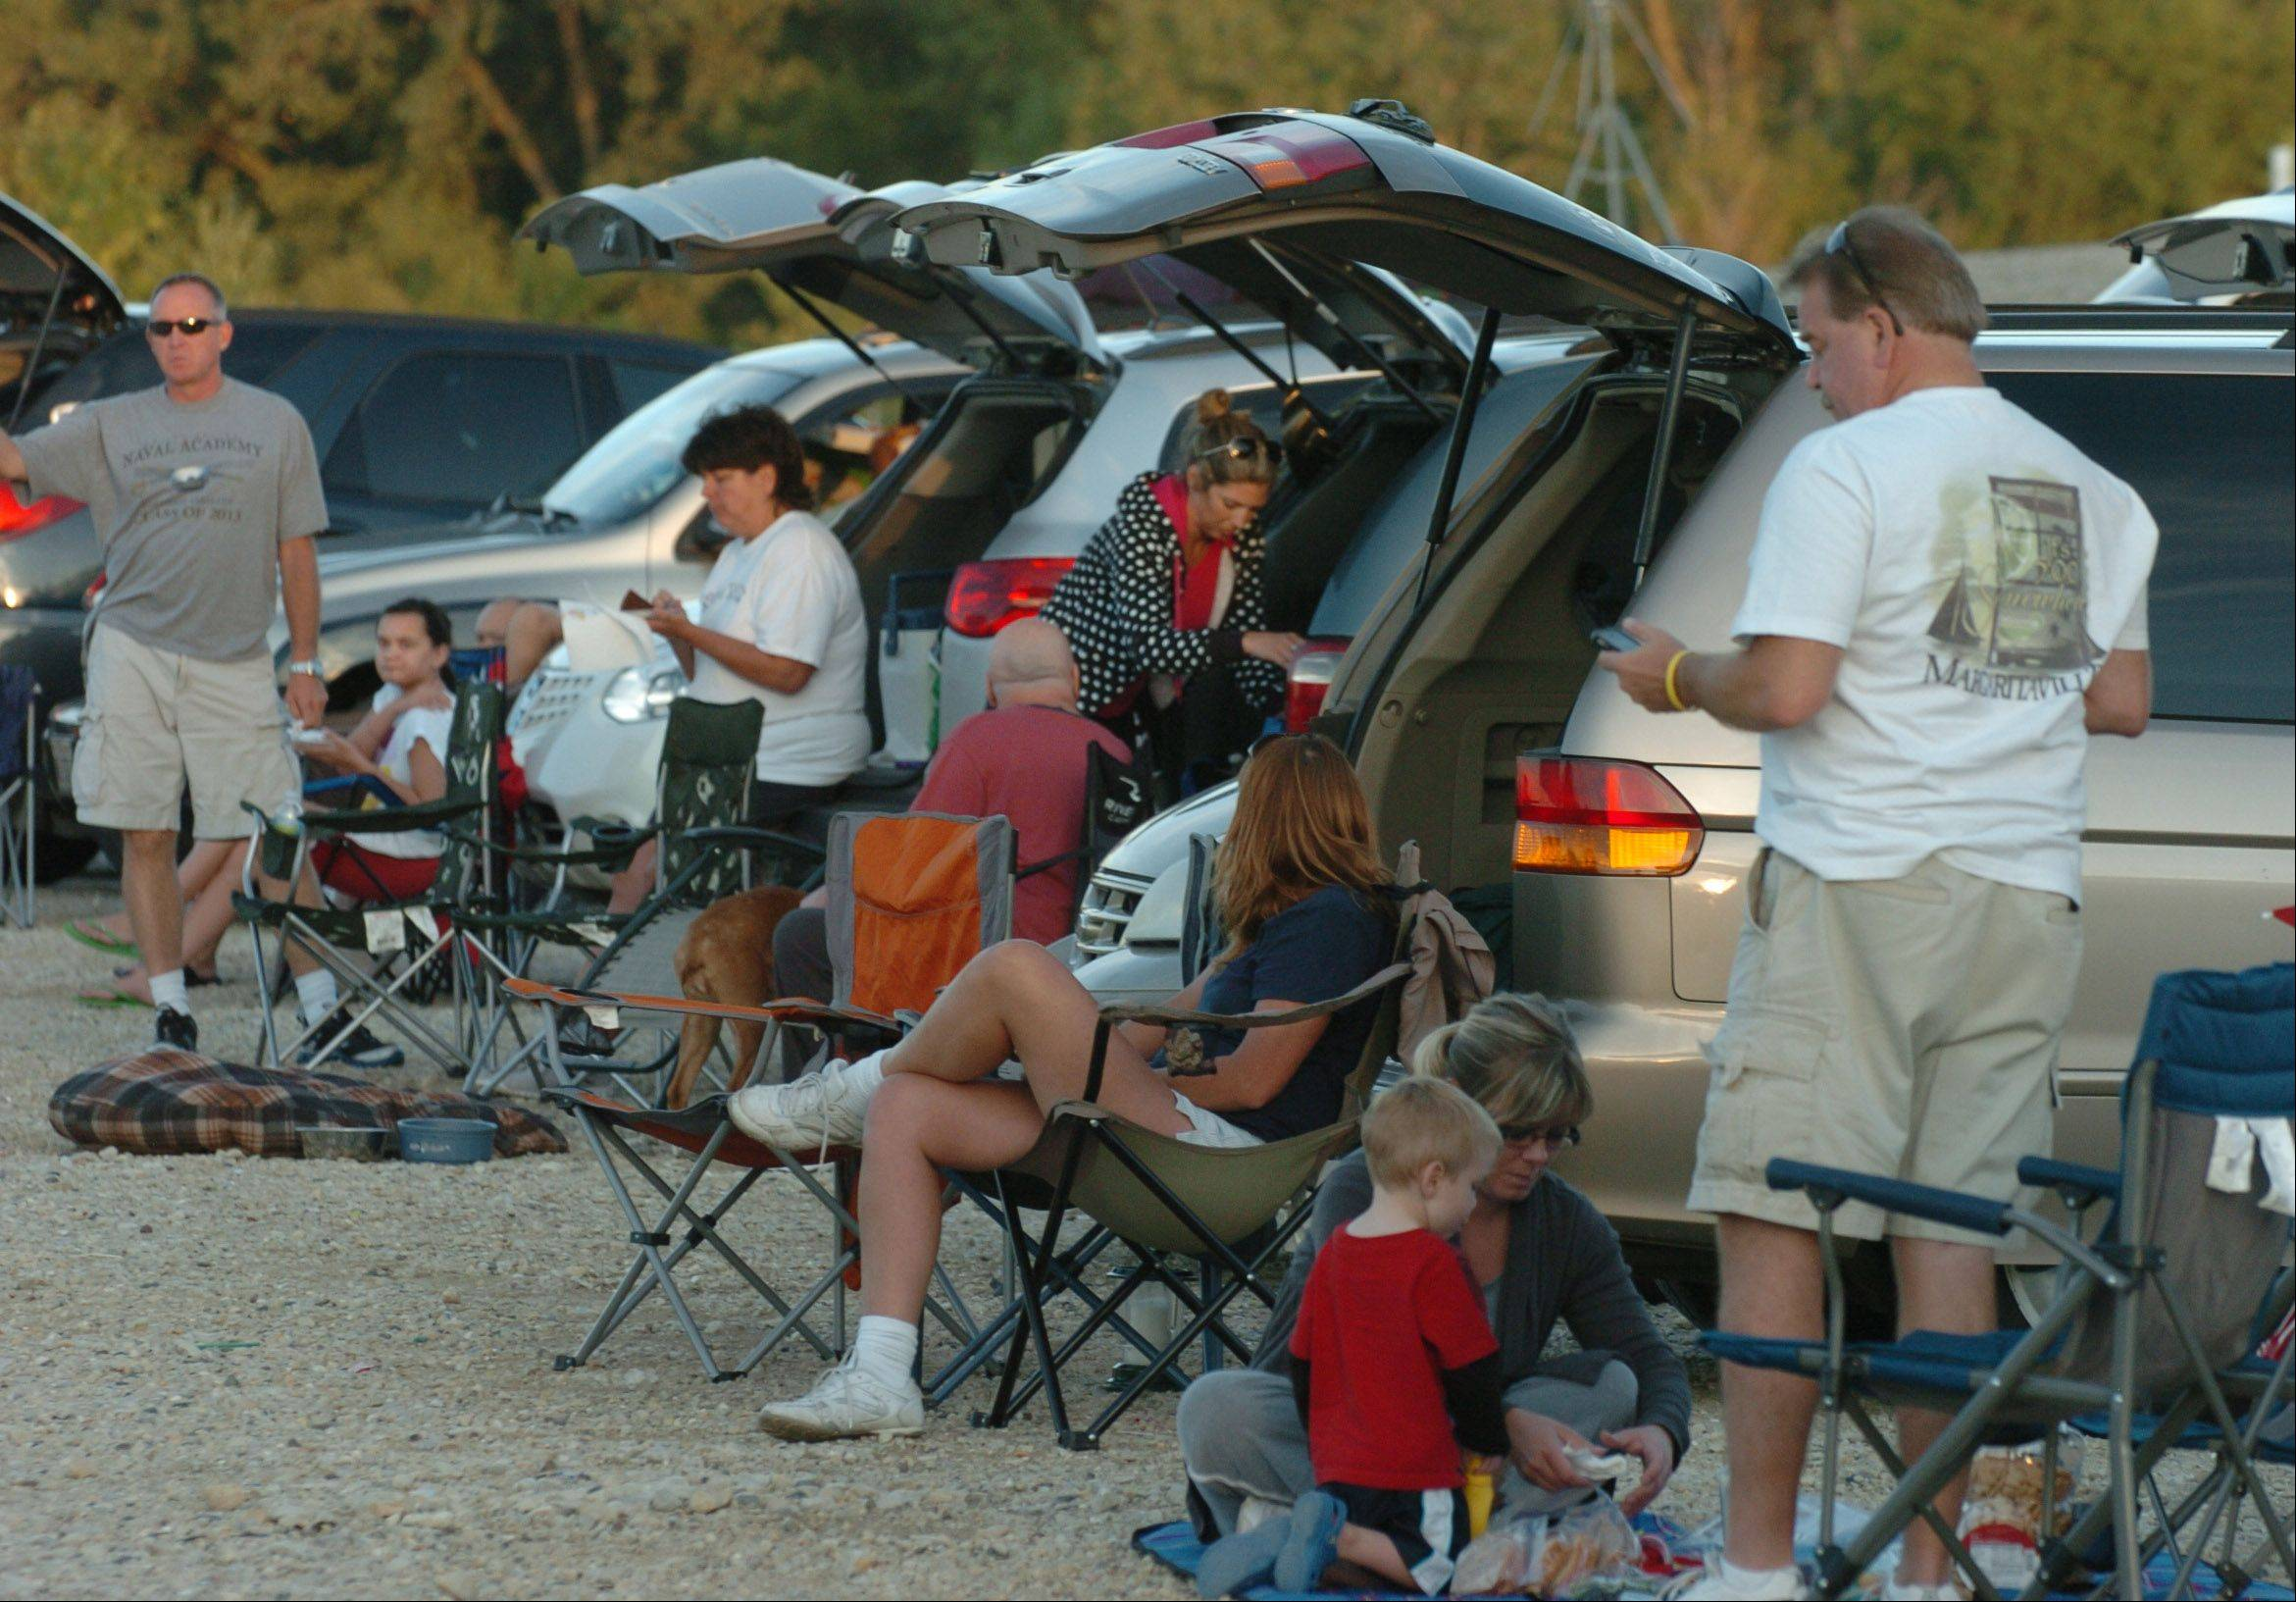 Families prepare for show time at the Cascade Drive-In Theater in West Chicago.